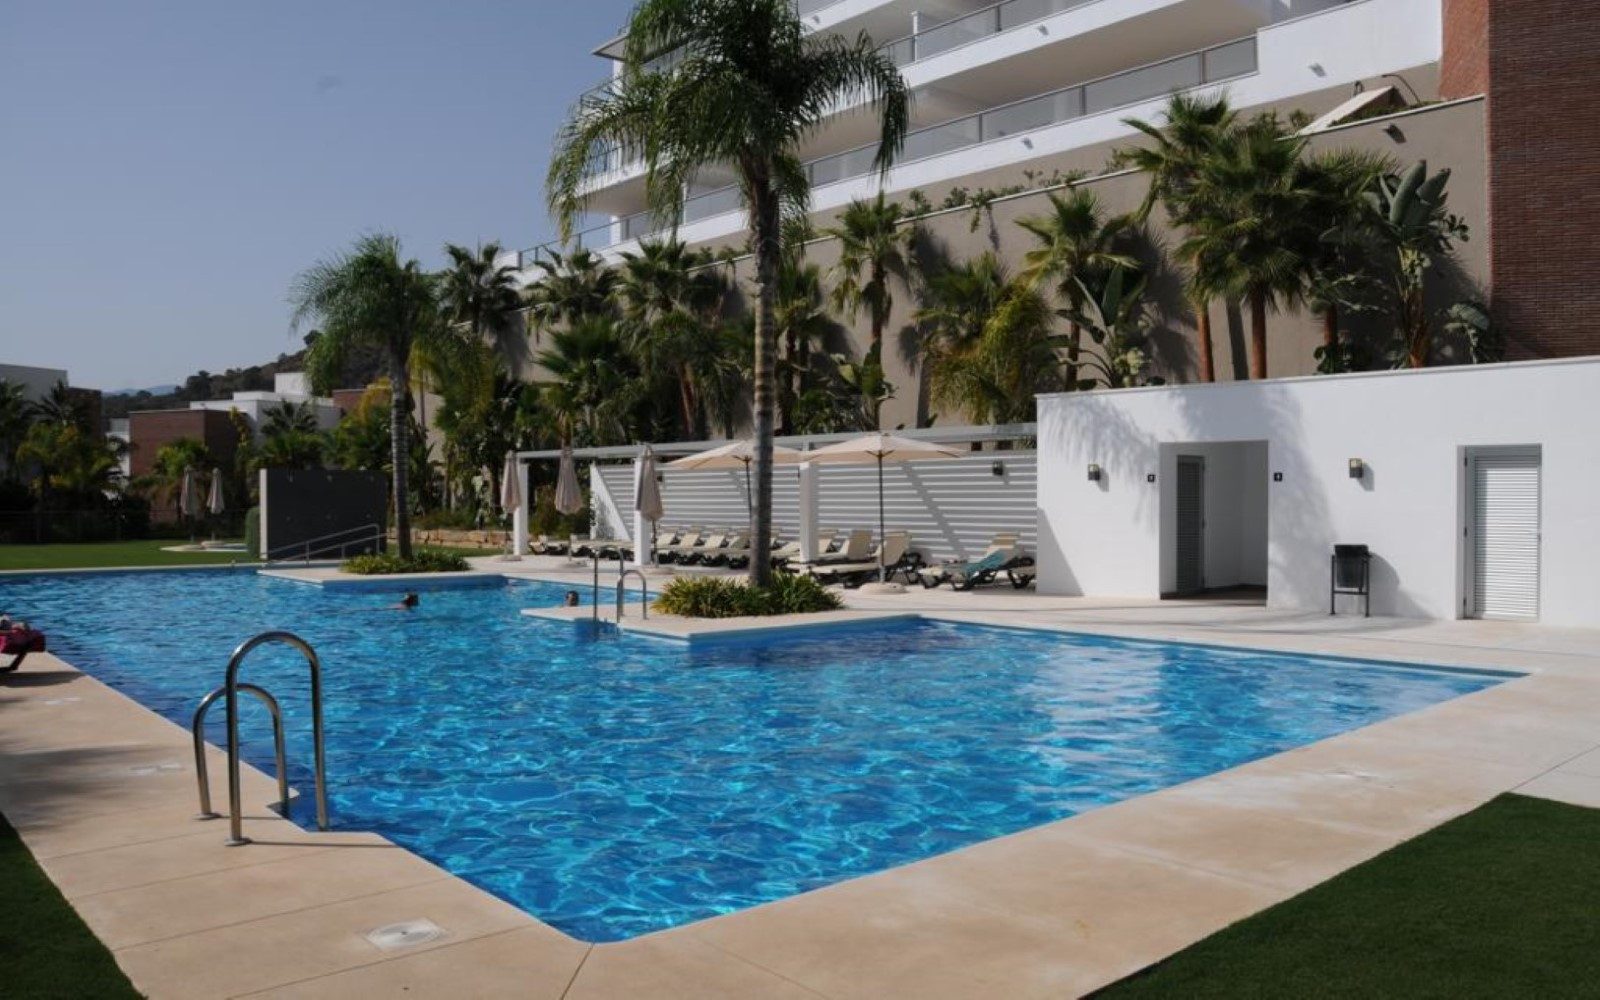 Apartment for rent in <i>Los Arqueros, </i>Benahavis